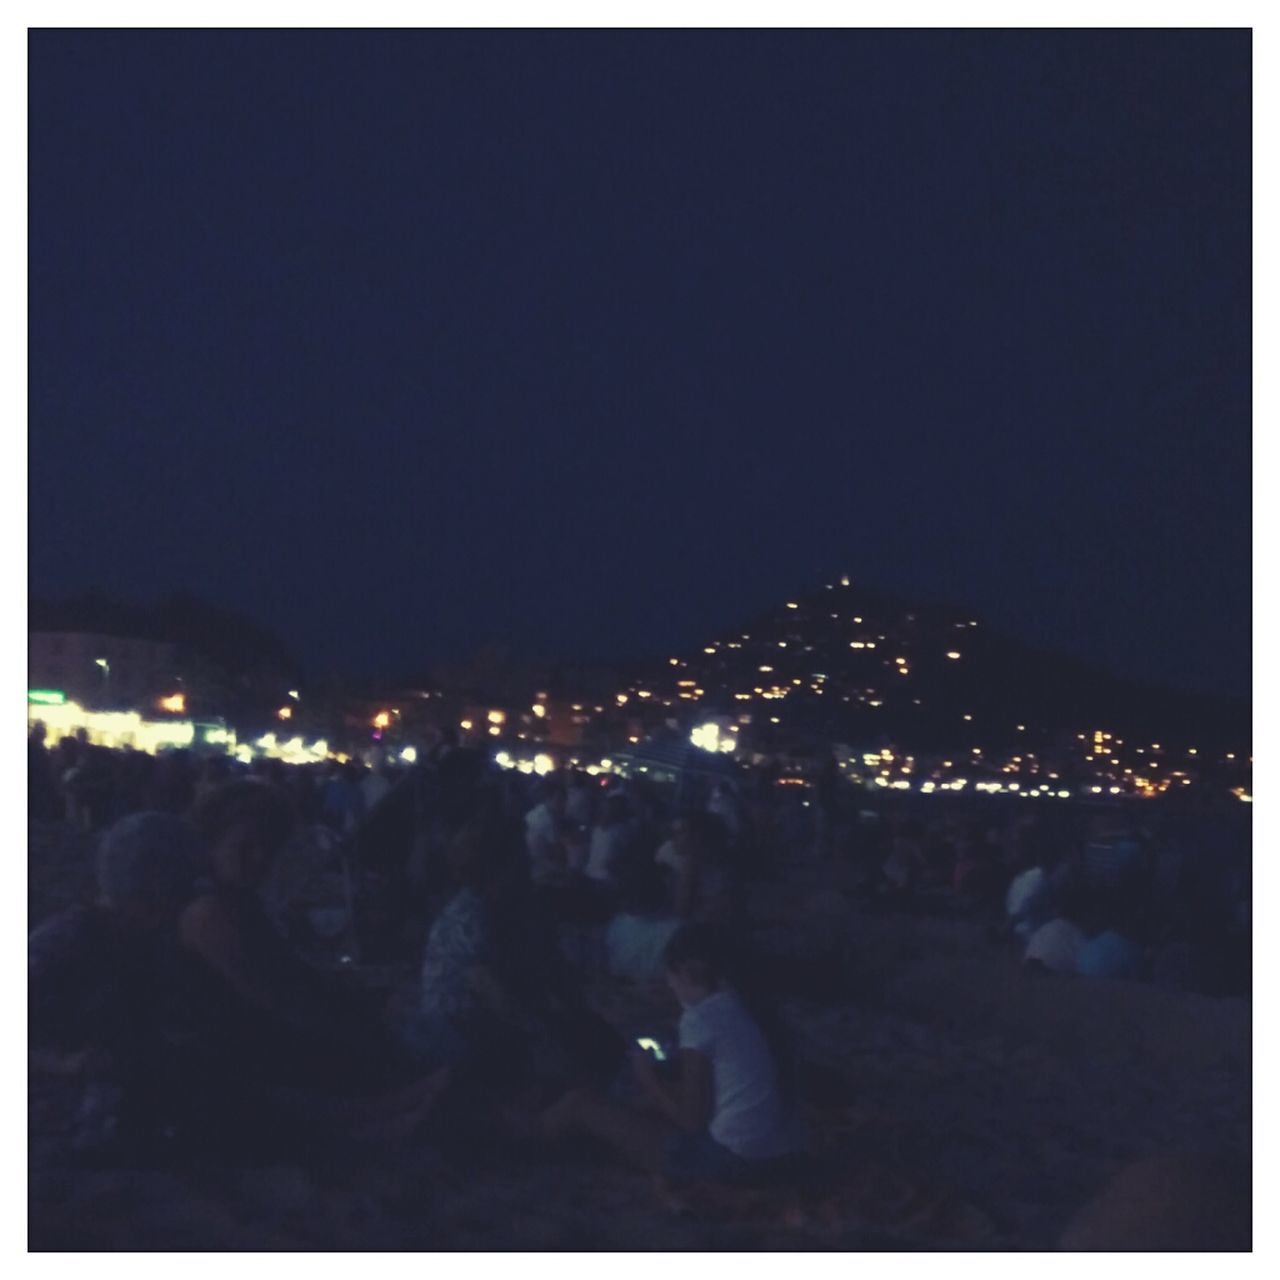 People Waiting For Fireworks By Illuminated Mountain